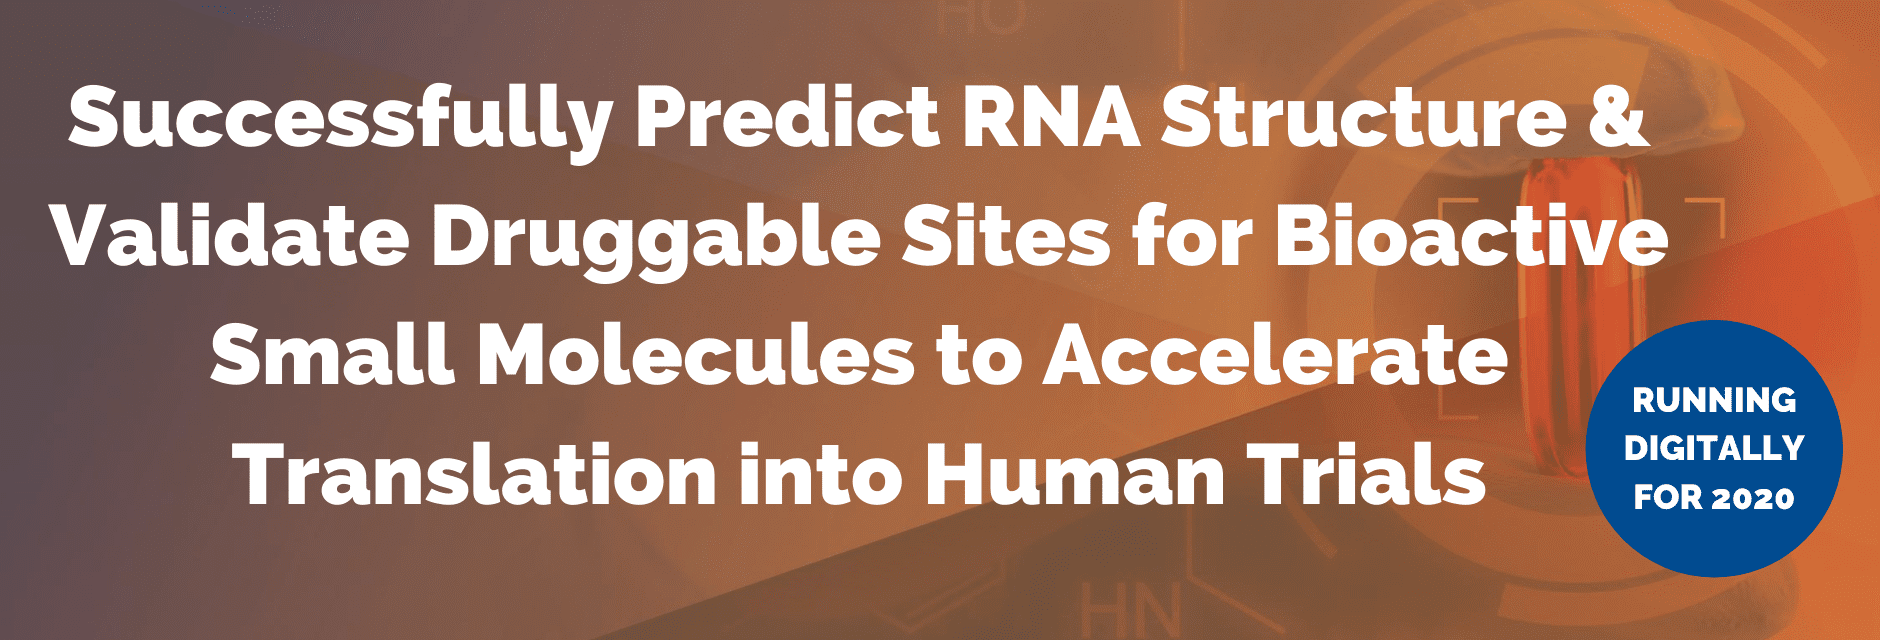 Successfully Predict RNA Structure & Validate Druggable Sites for Bioactive Small Molecules to Accelerate Translation into Human Trials